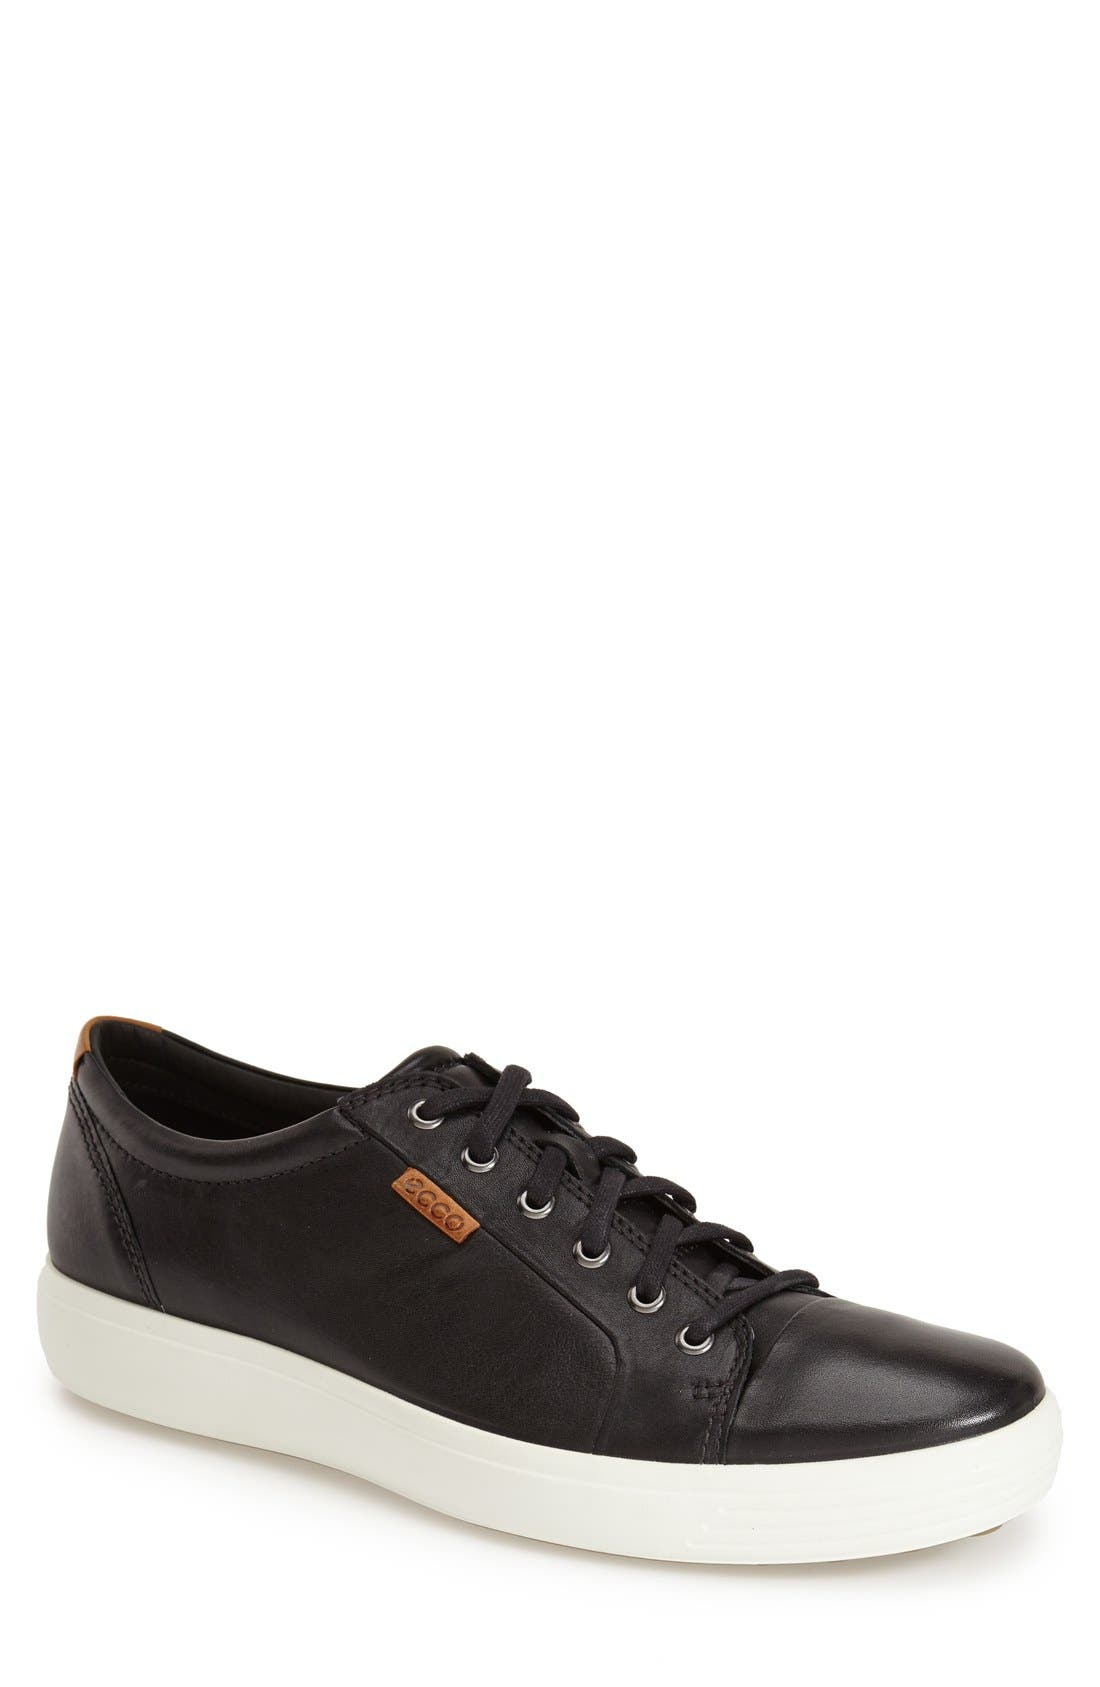 Soft VII Lace-Up Sneaker,                             Main thumbnail 1, color,                             Black Leather